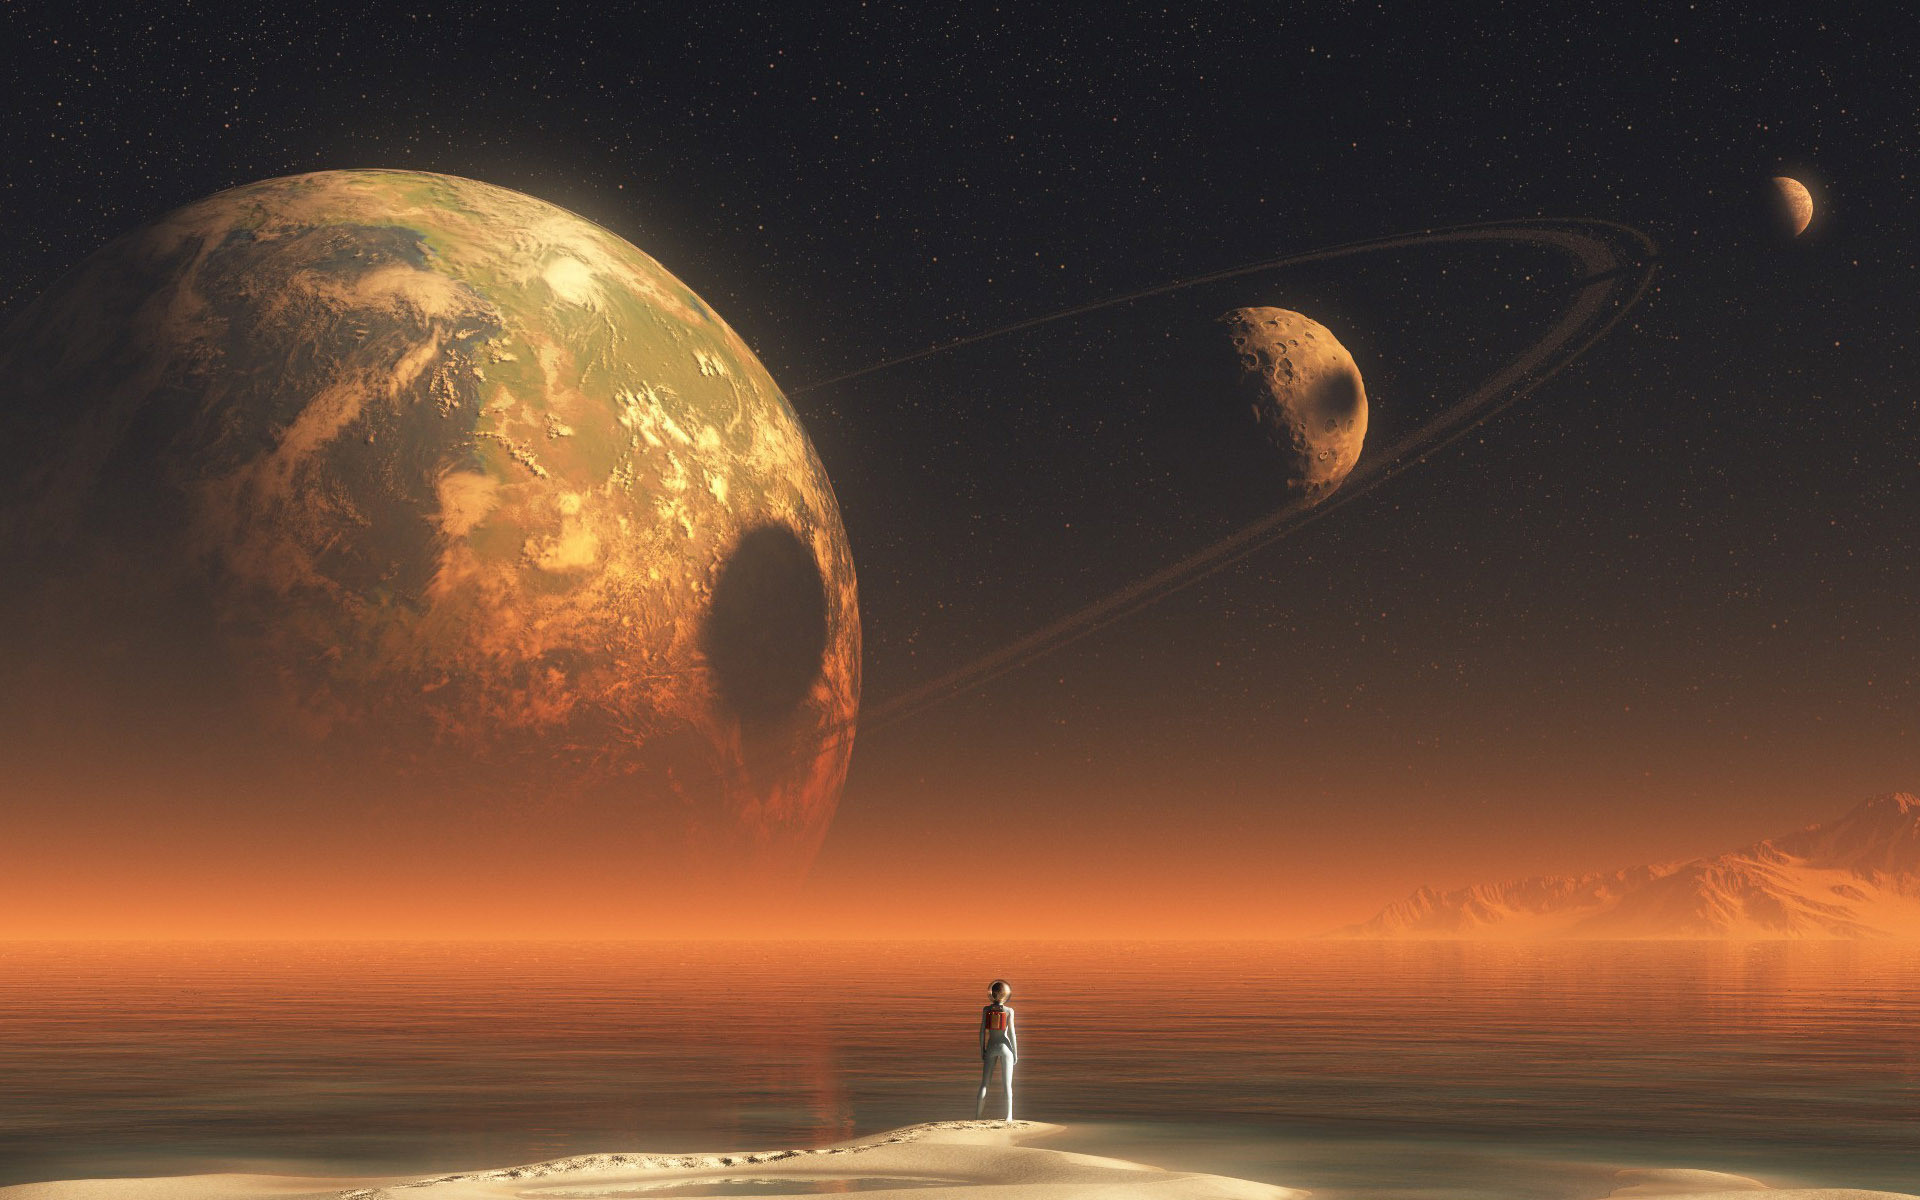 Res: 1920x1200, Alien looking at the planet space hd wallpaper .